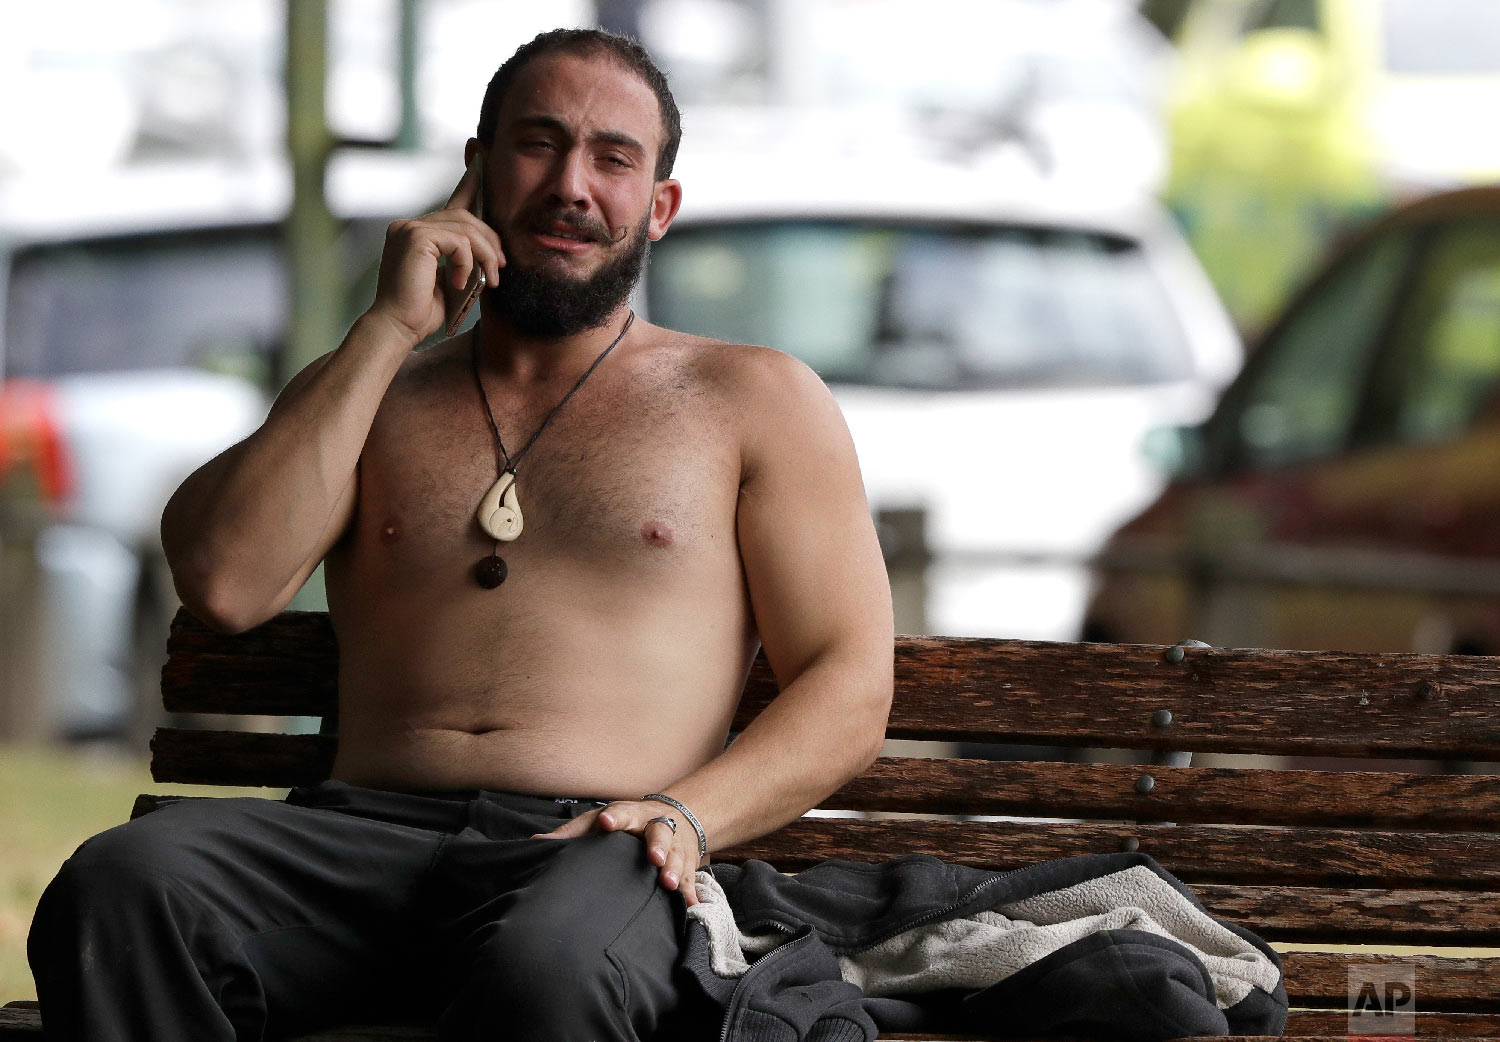 A man reacts as he speaks on a mobile phone near a mosque in central Christchurch, New Zealand, Friday, March 15, 2019. (AP Photo/Mark Baker)